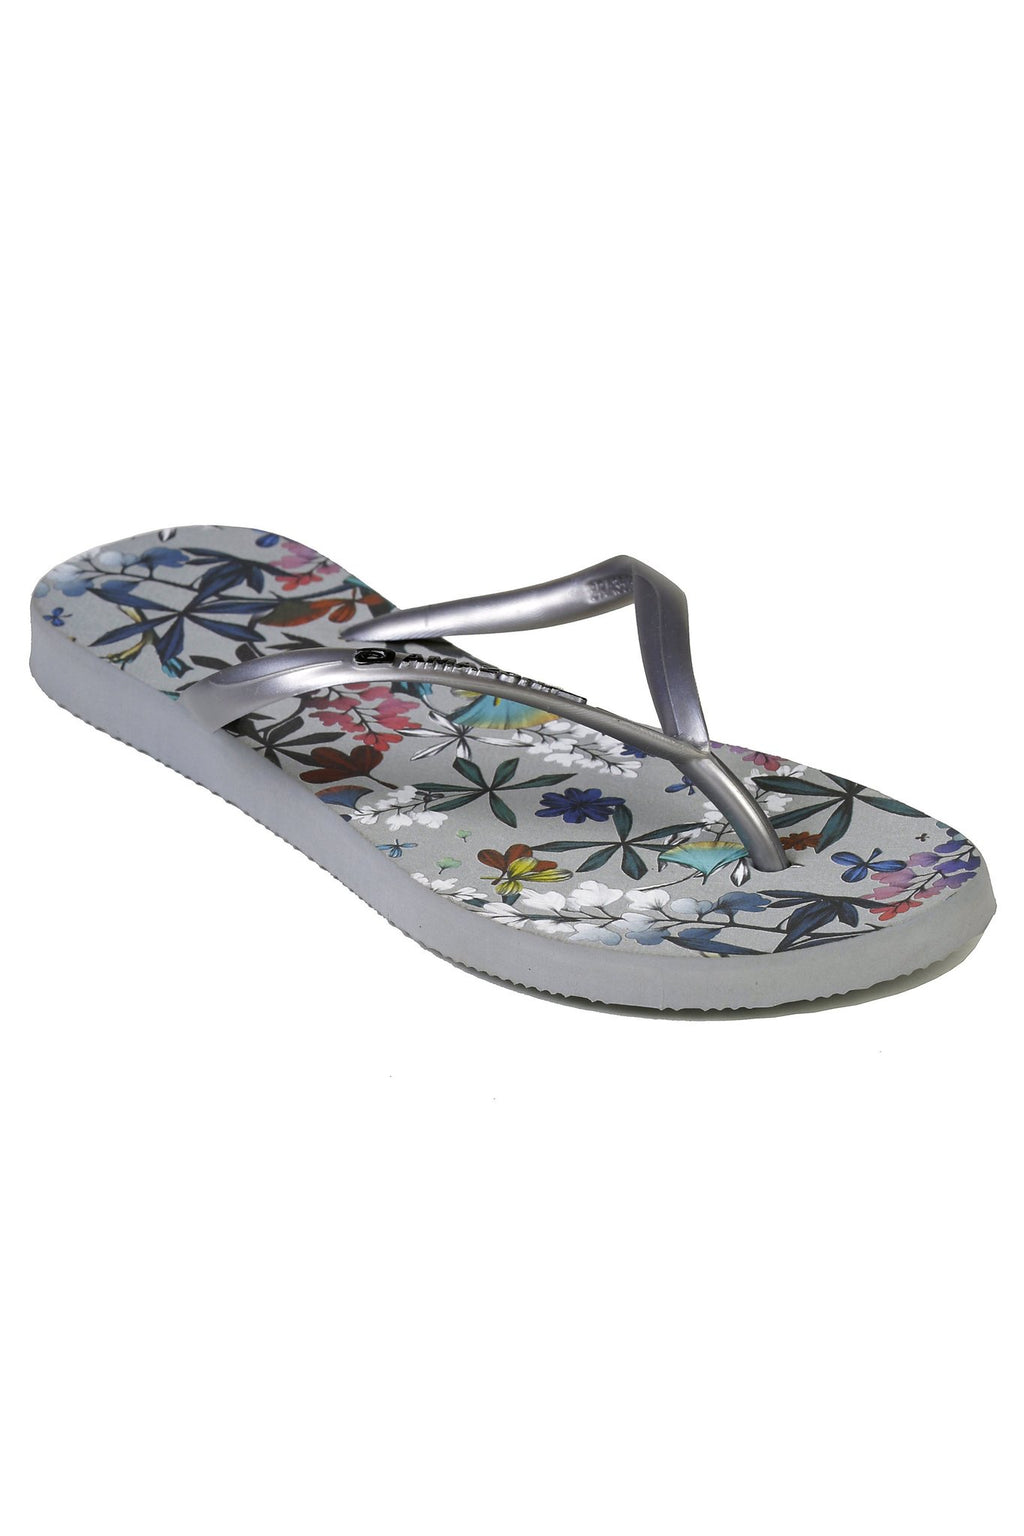 Amazonas Enjoy - Silver/Grey